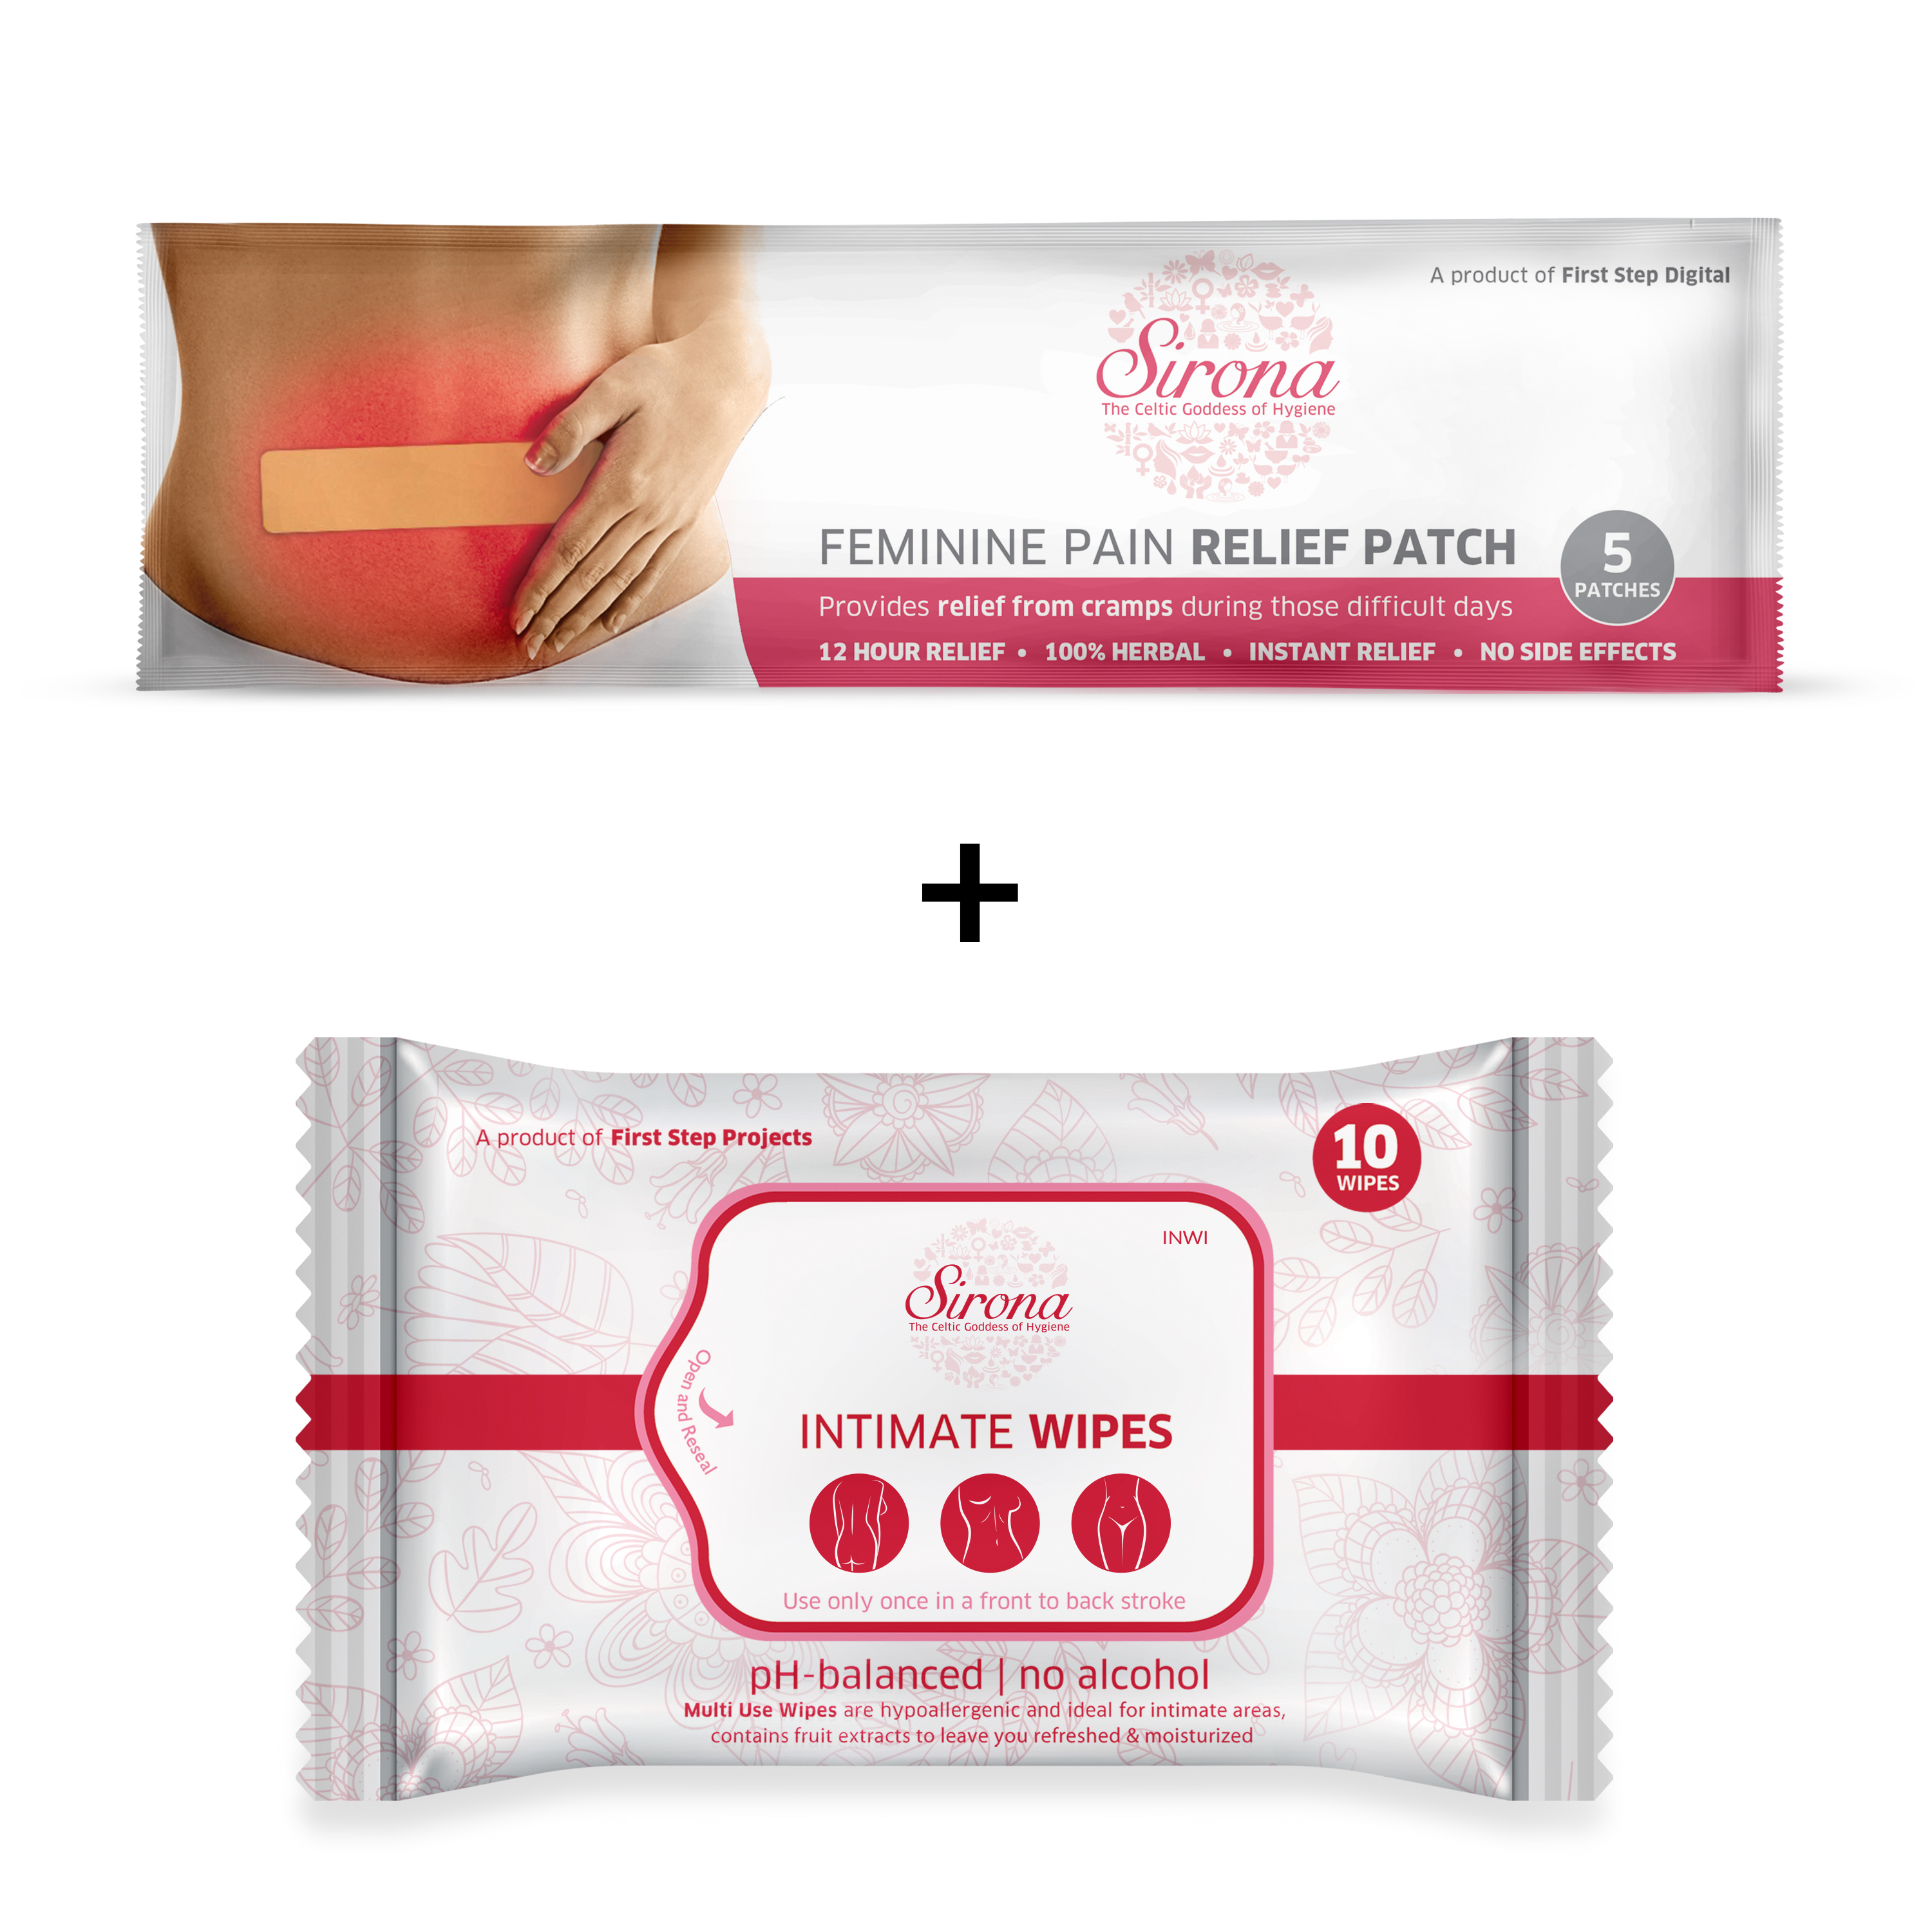 Sirona Feminine Pain Relief Patches for Period Pain - 5 Patches with Intimate Wipes for Clean your Intimate Area - 10 Wipes